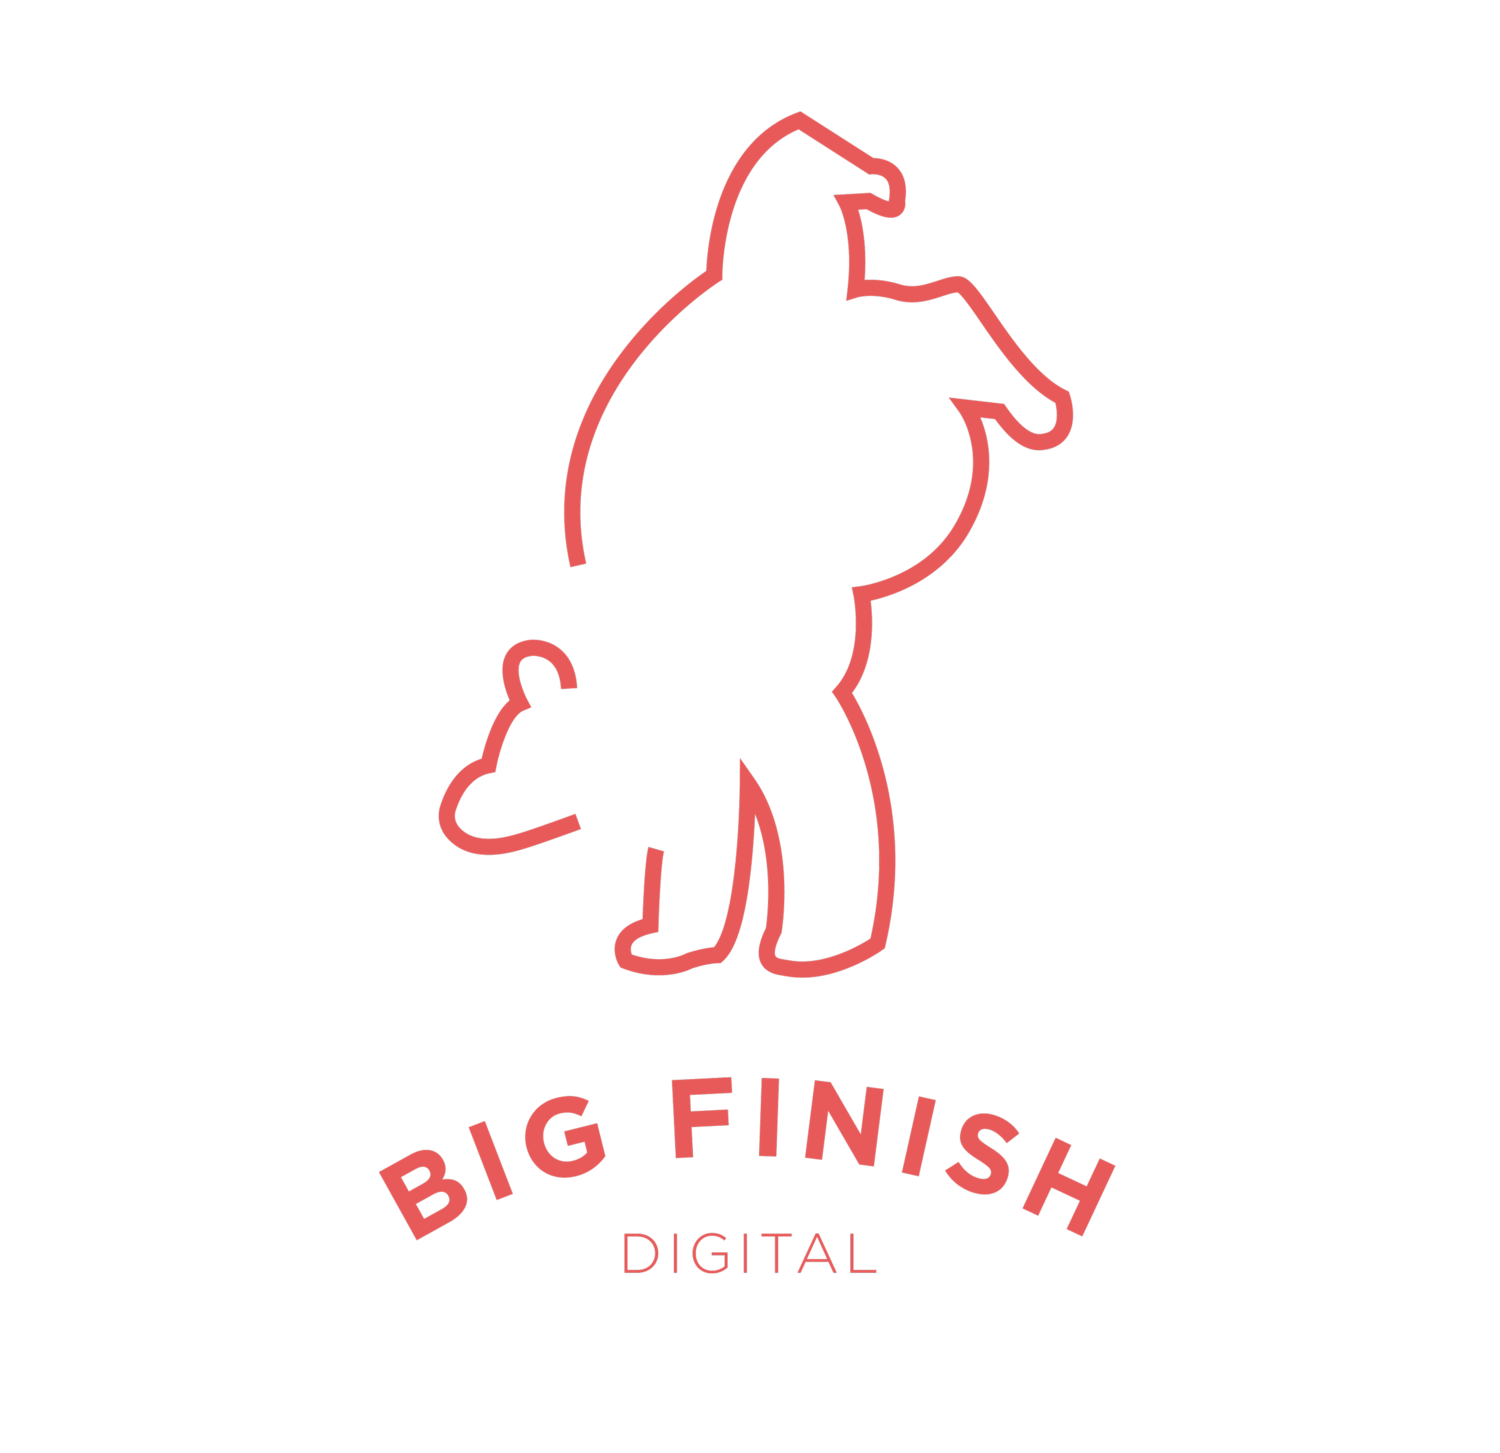 Big Finish Digital